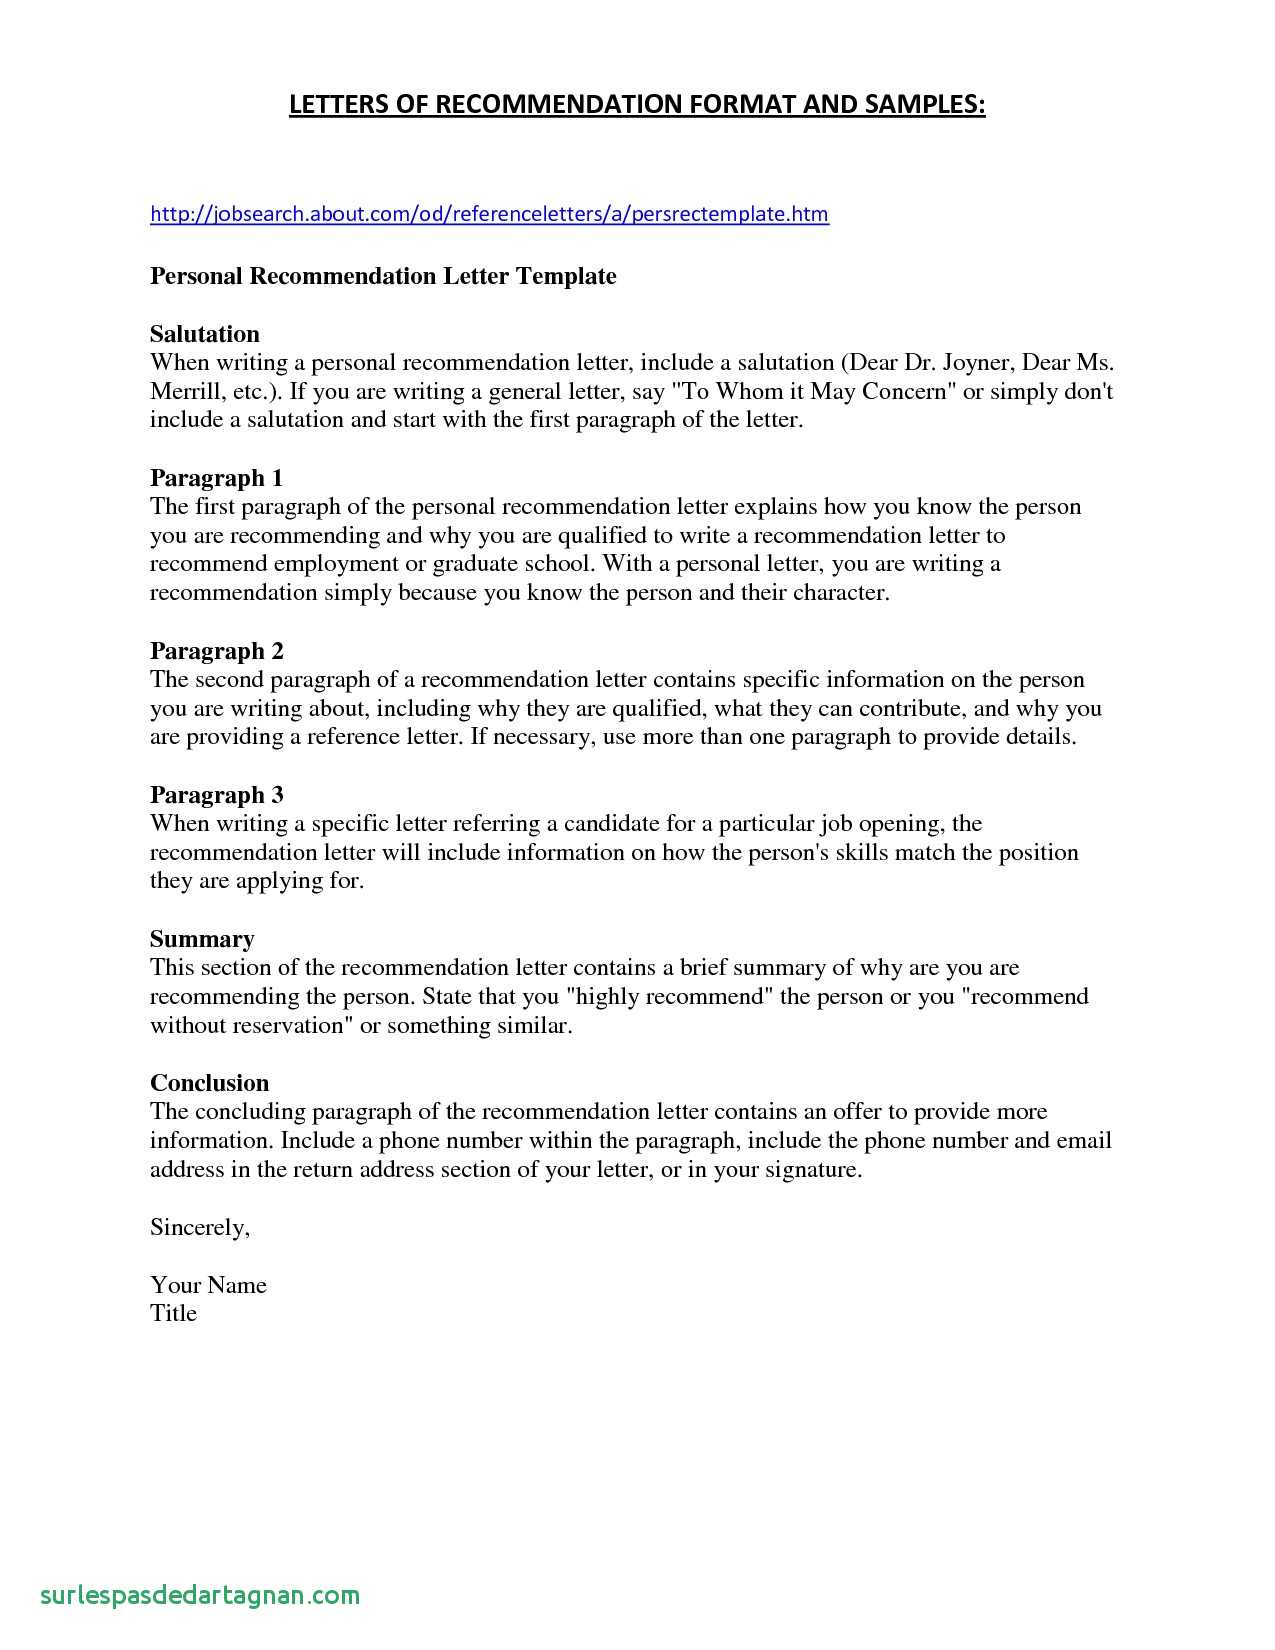 Free Recommendation Letter Template for Employment - Uncategorized 15 Nursing School Application Letter Nursing School